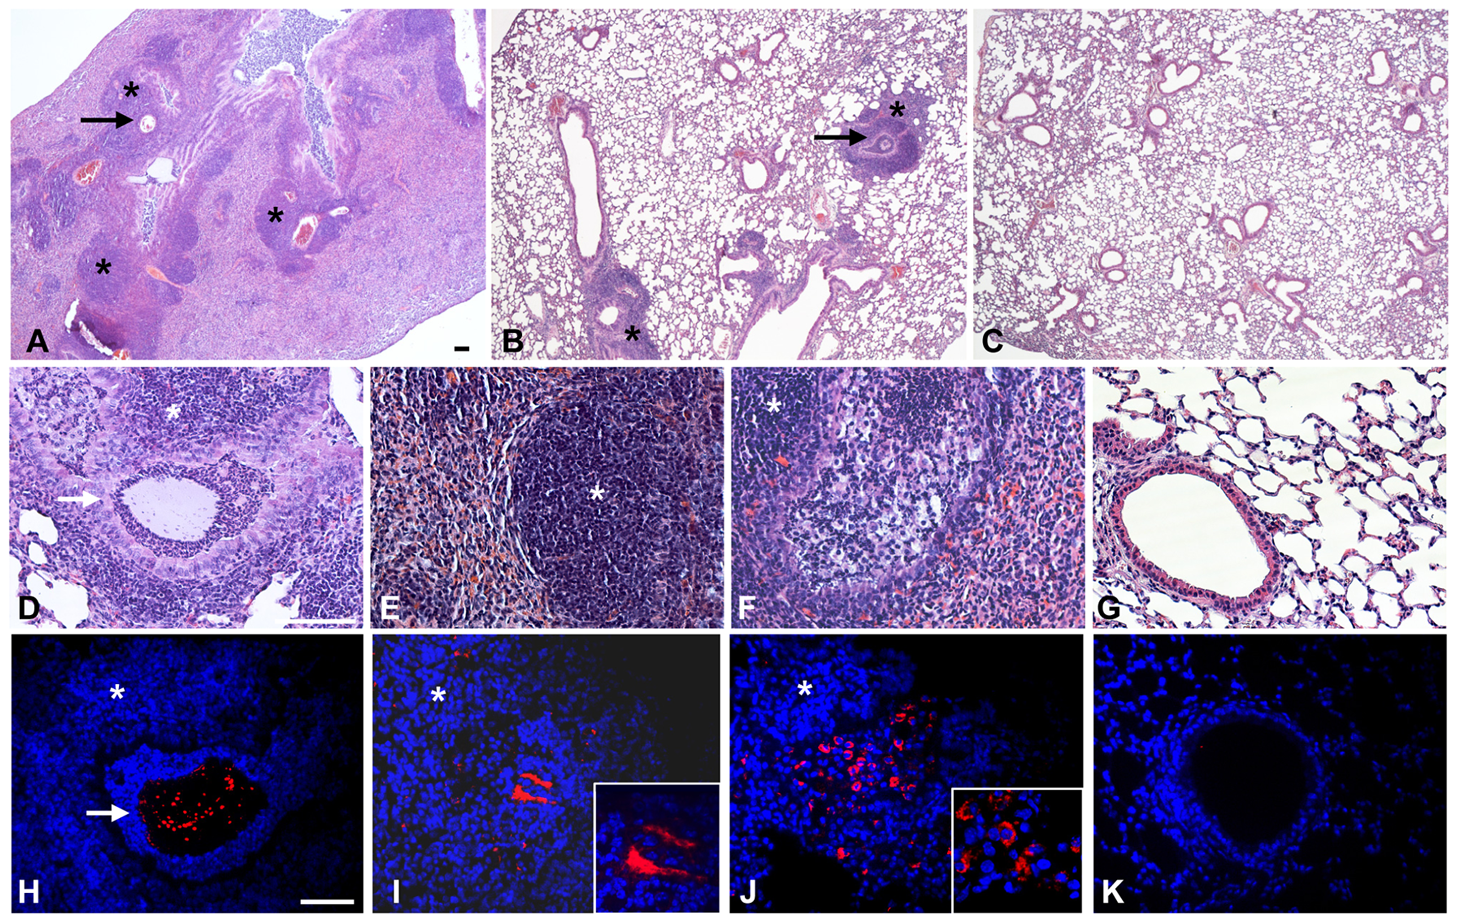 Murine lung histology and localization of <i>P. aeruginosa</i> Pos-STM mutants after 14 days.